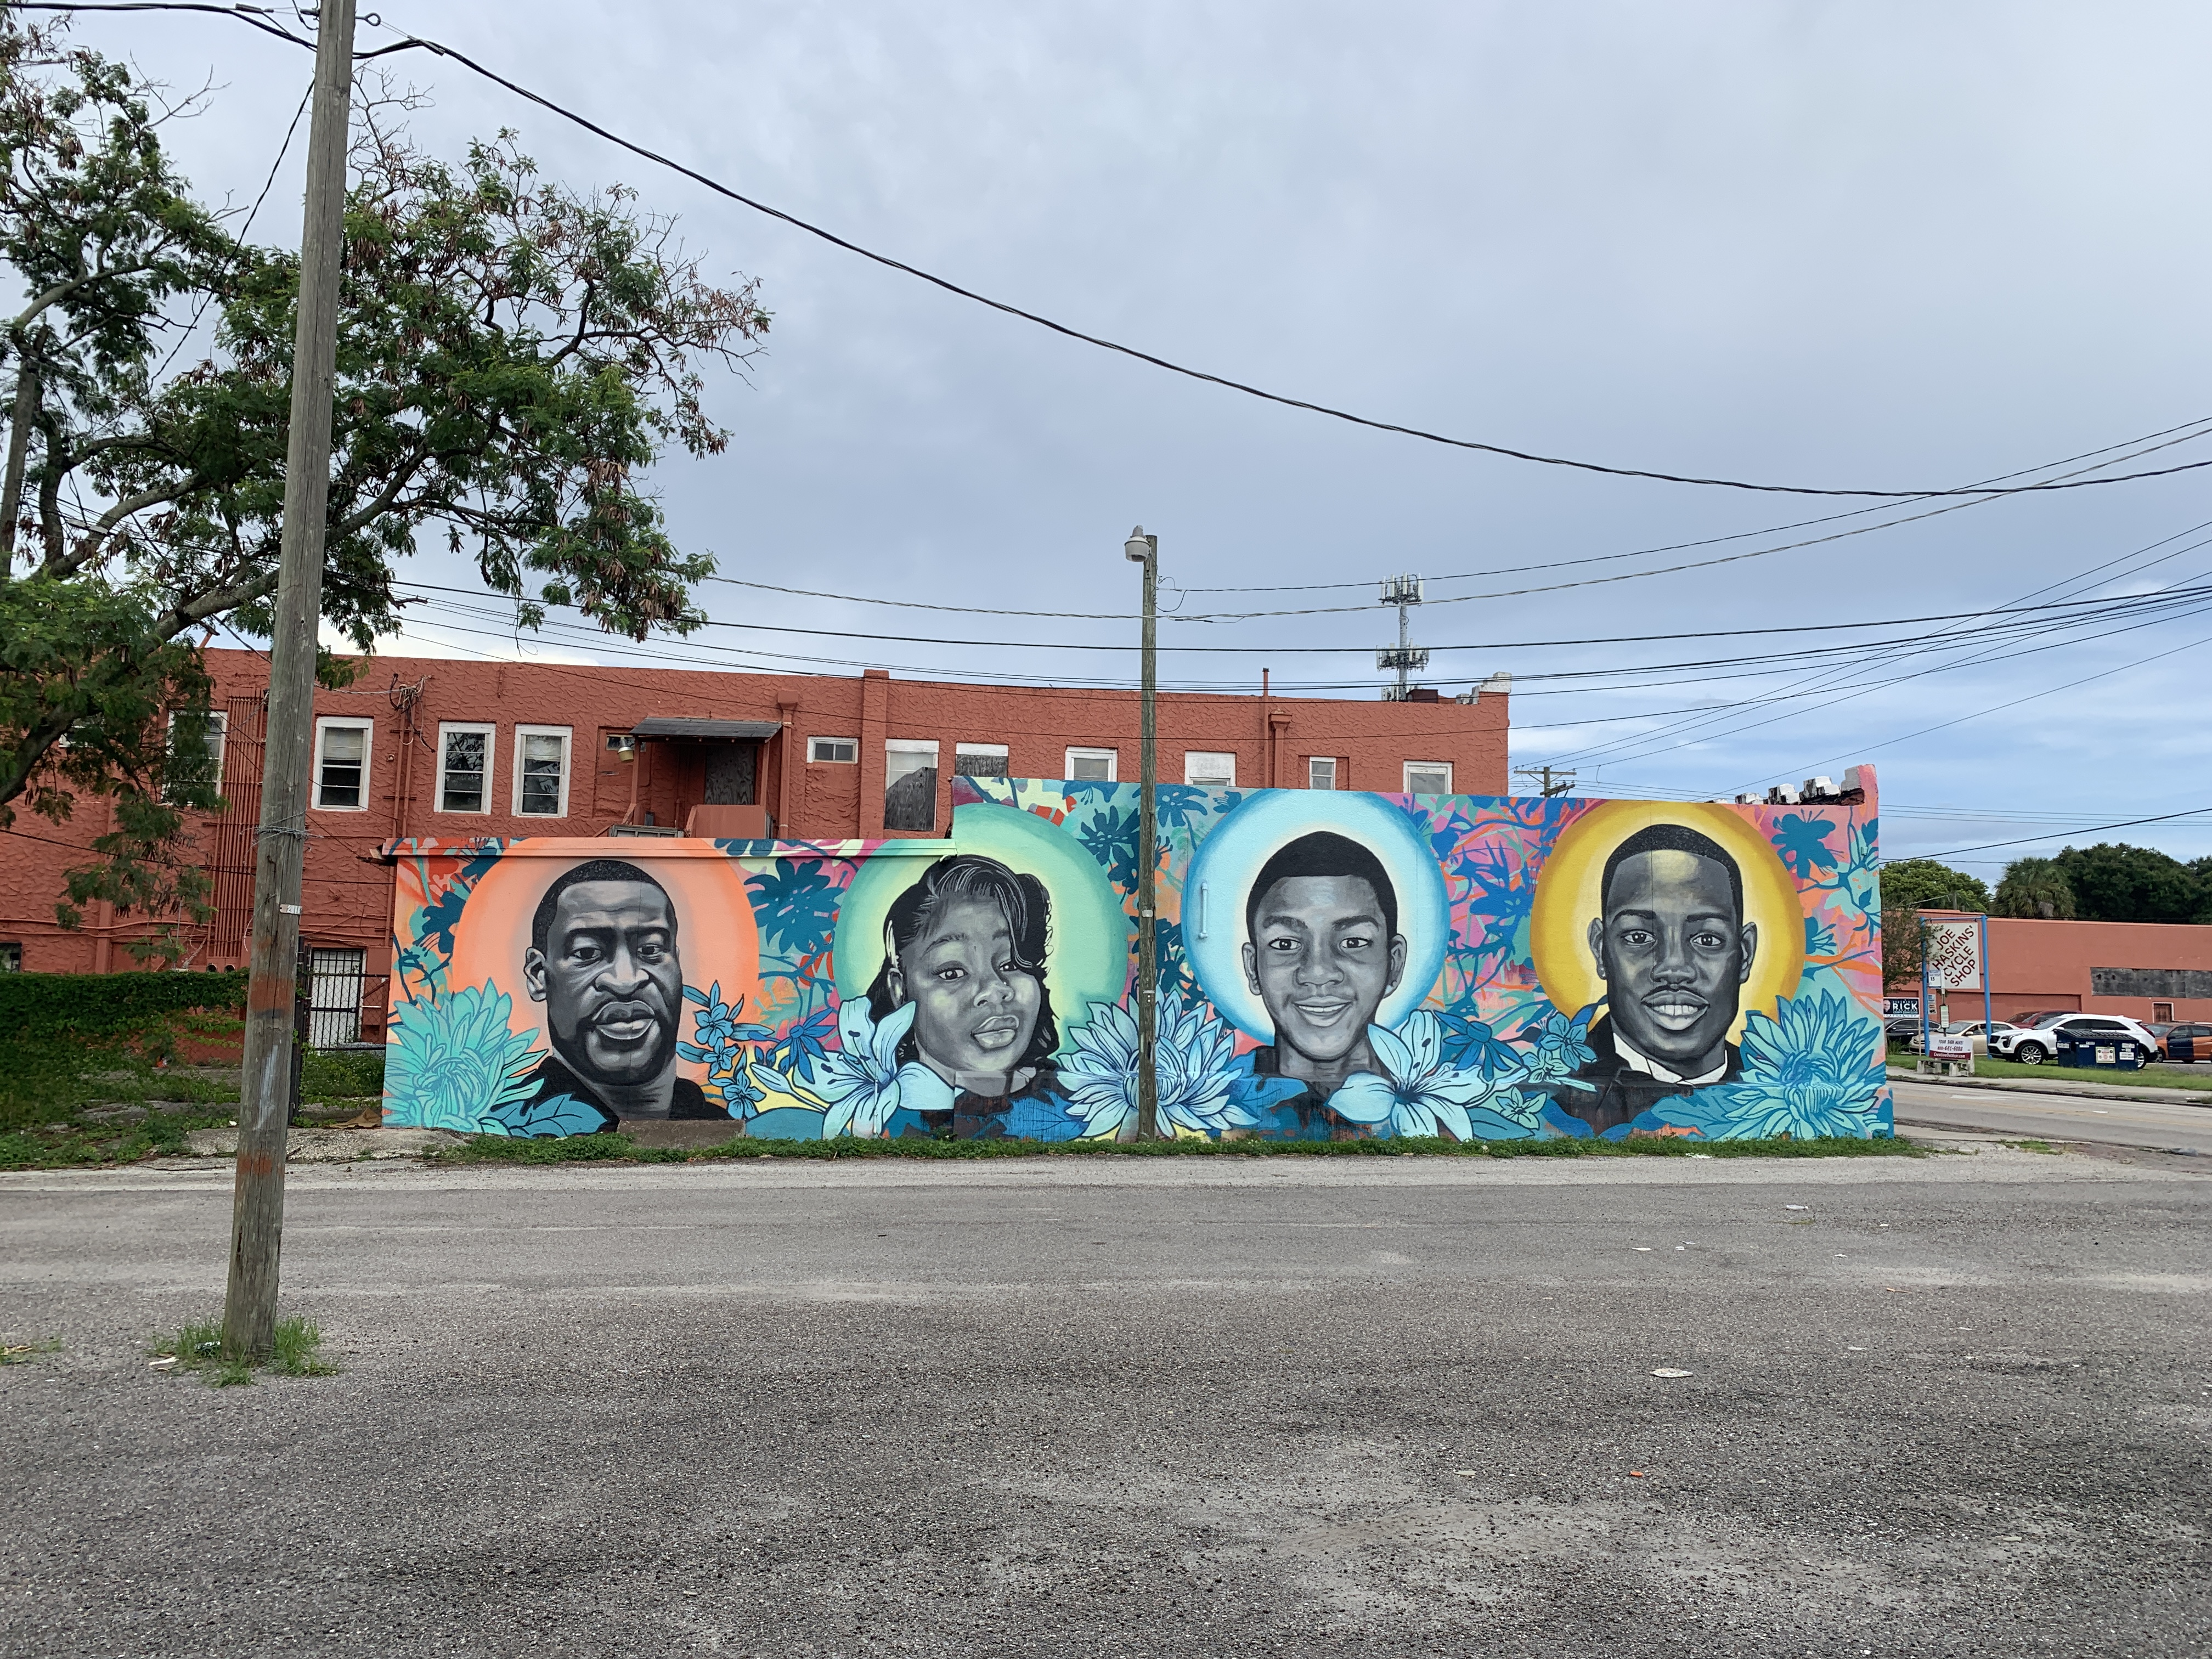 Black Lives Matter Mural - Tribute to Trayvon Martin, George Floyd, Breonna Taylor, and Ahmaud Arbery